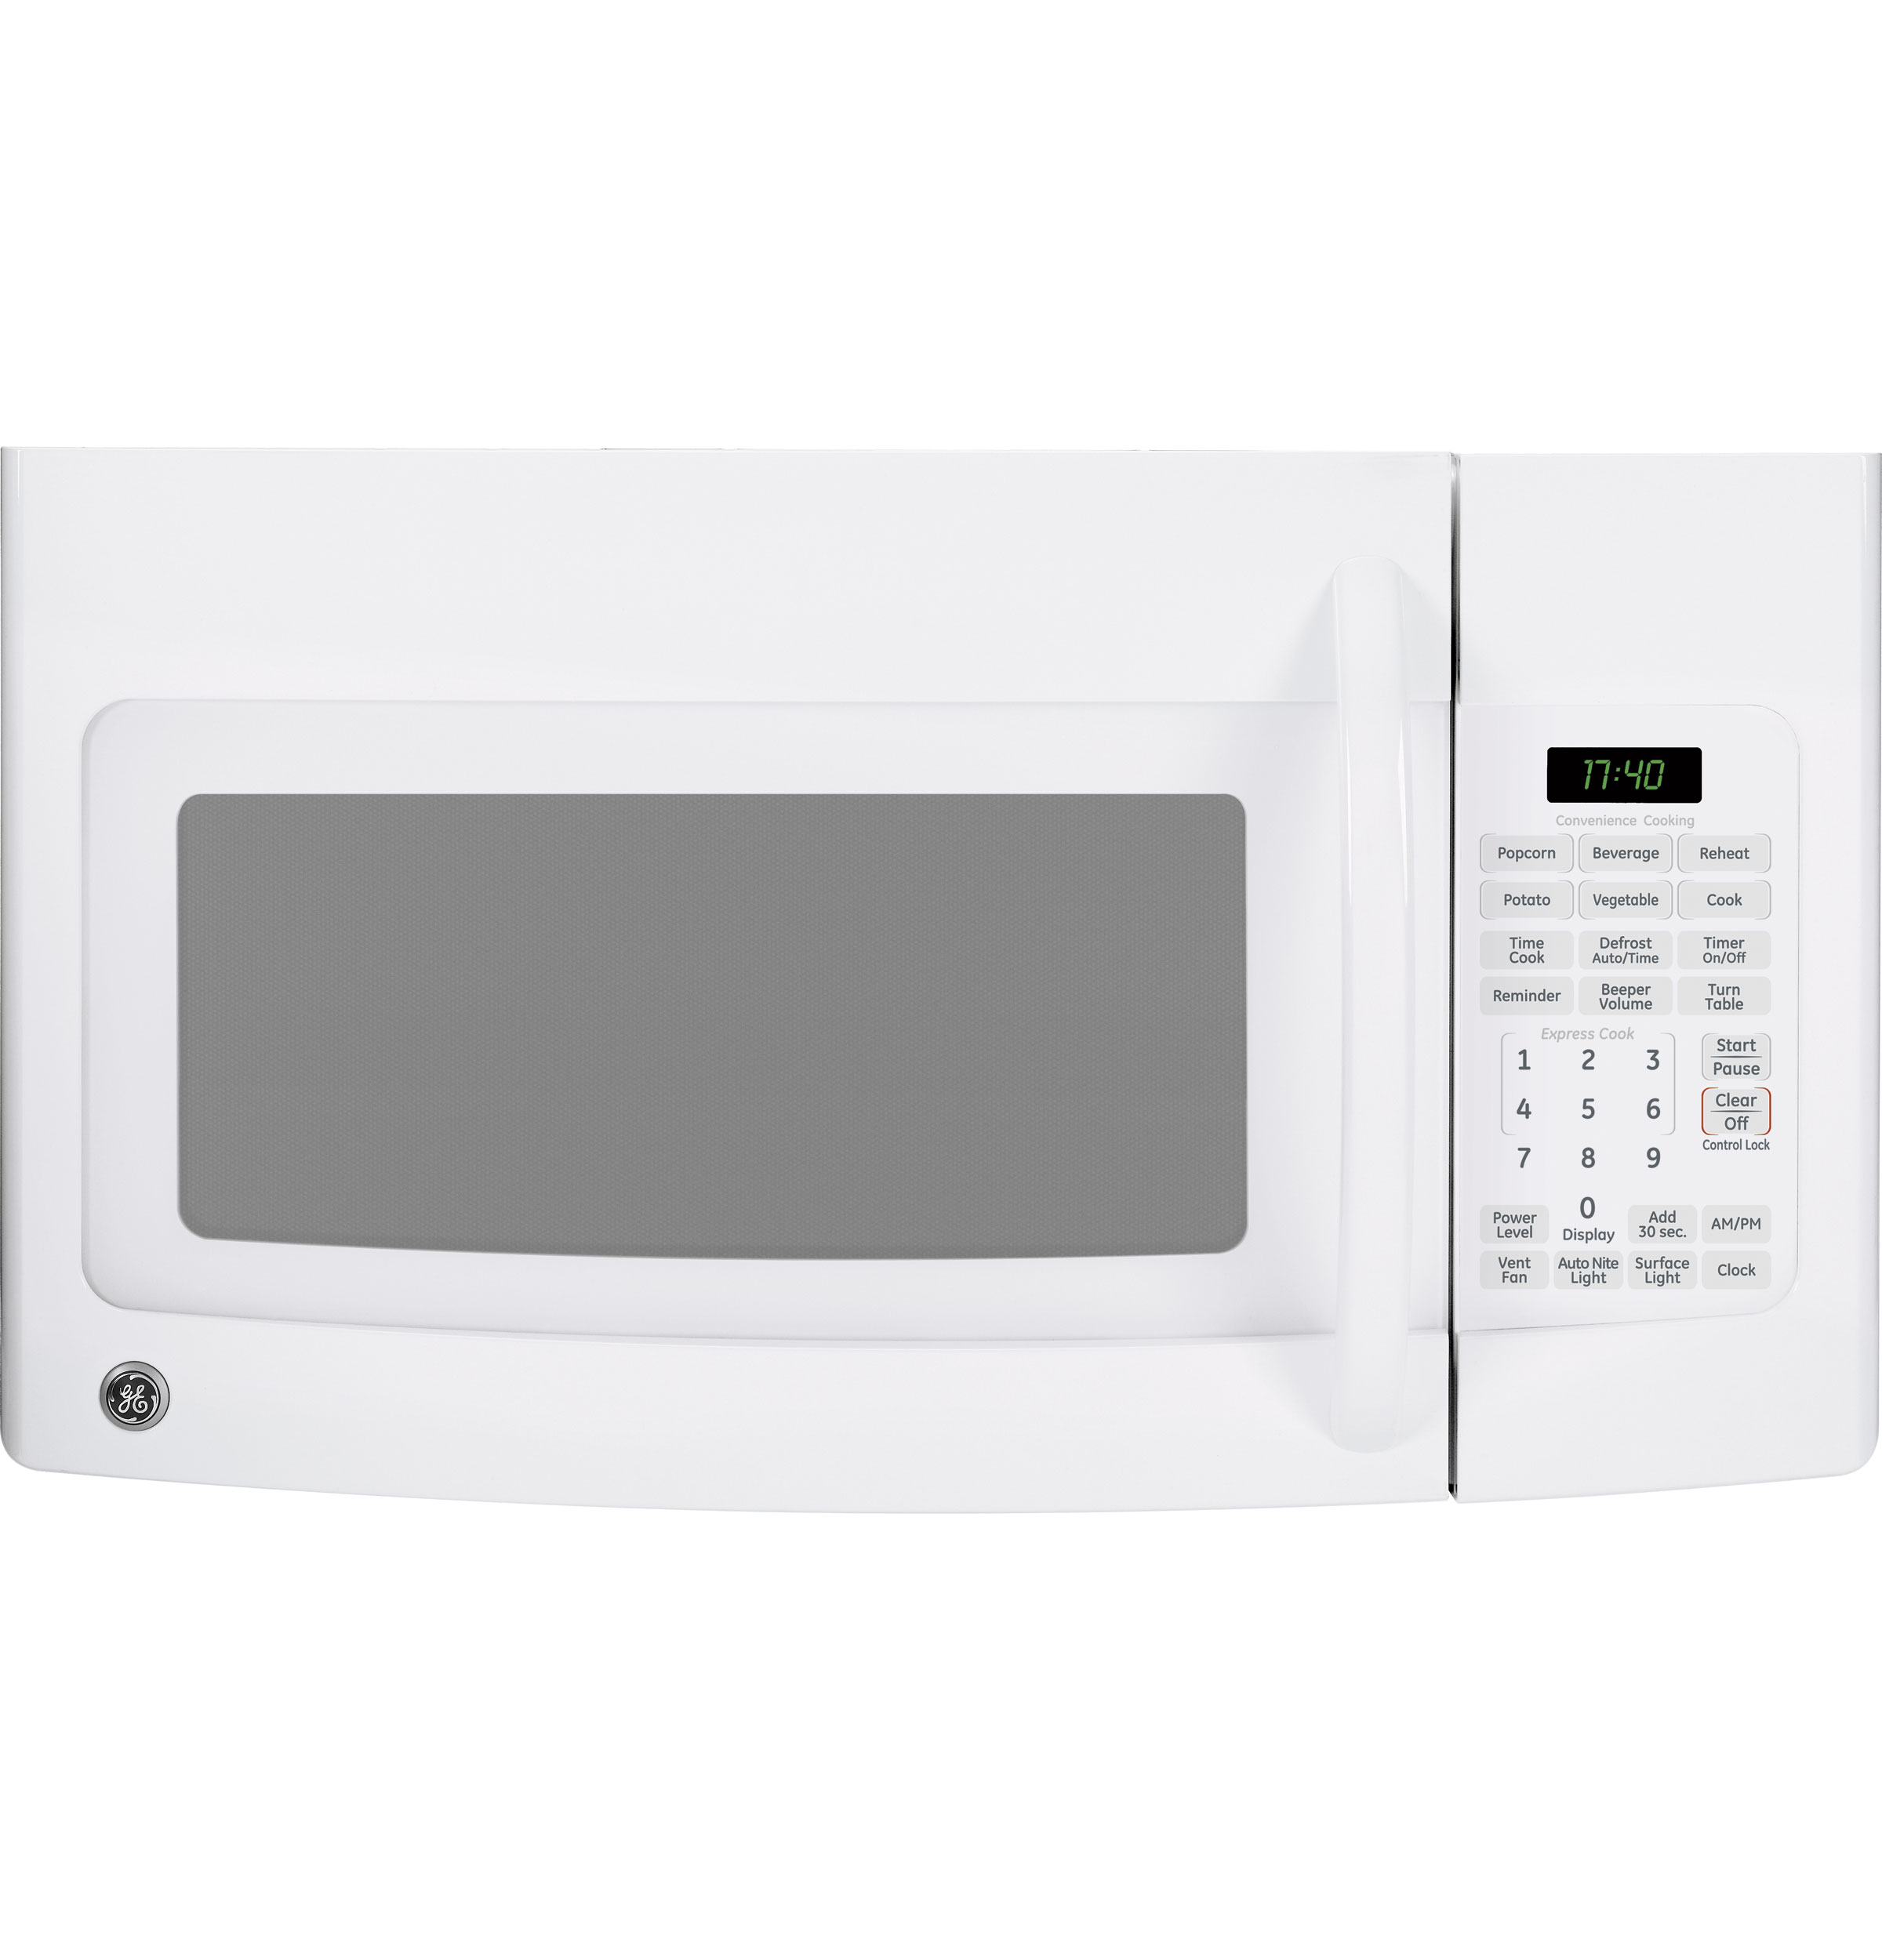 Ge Spacemaker 174 1 7 Cu Ft Over The Range Microwave Oven